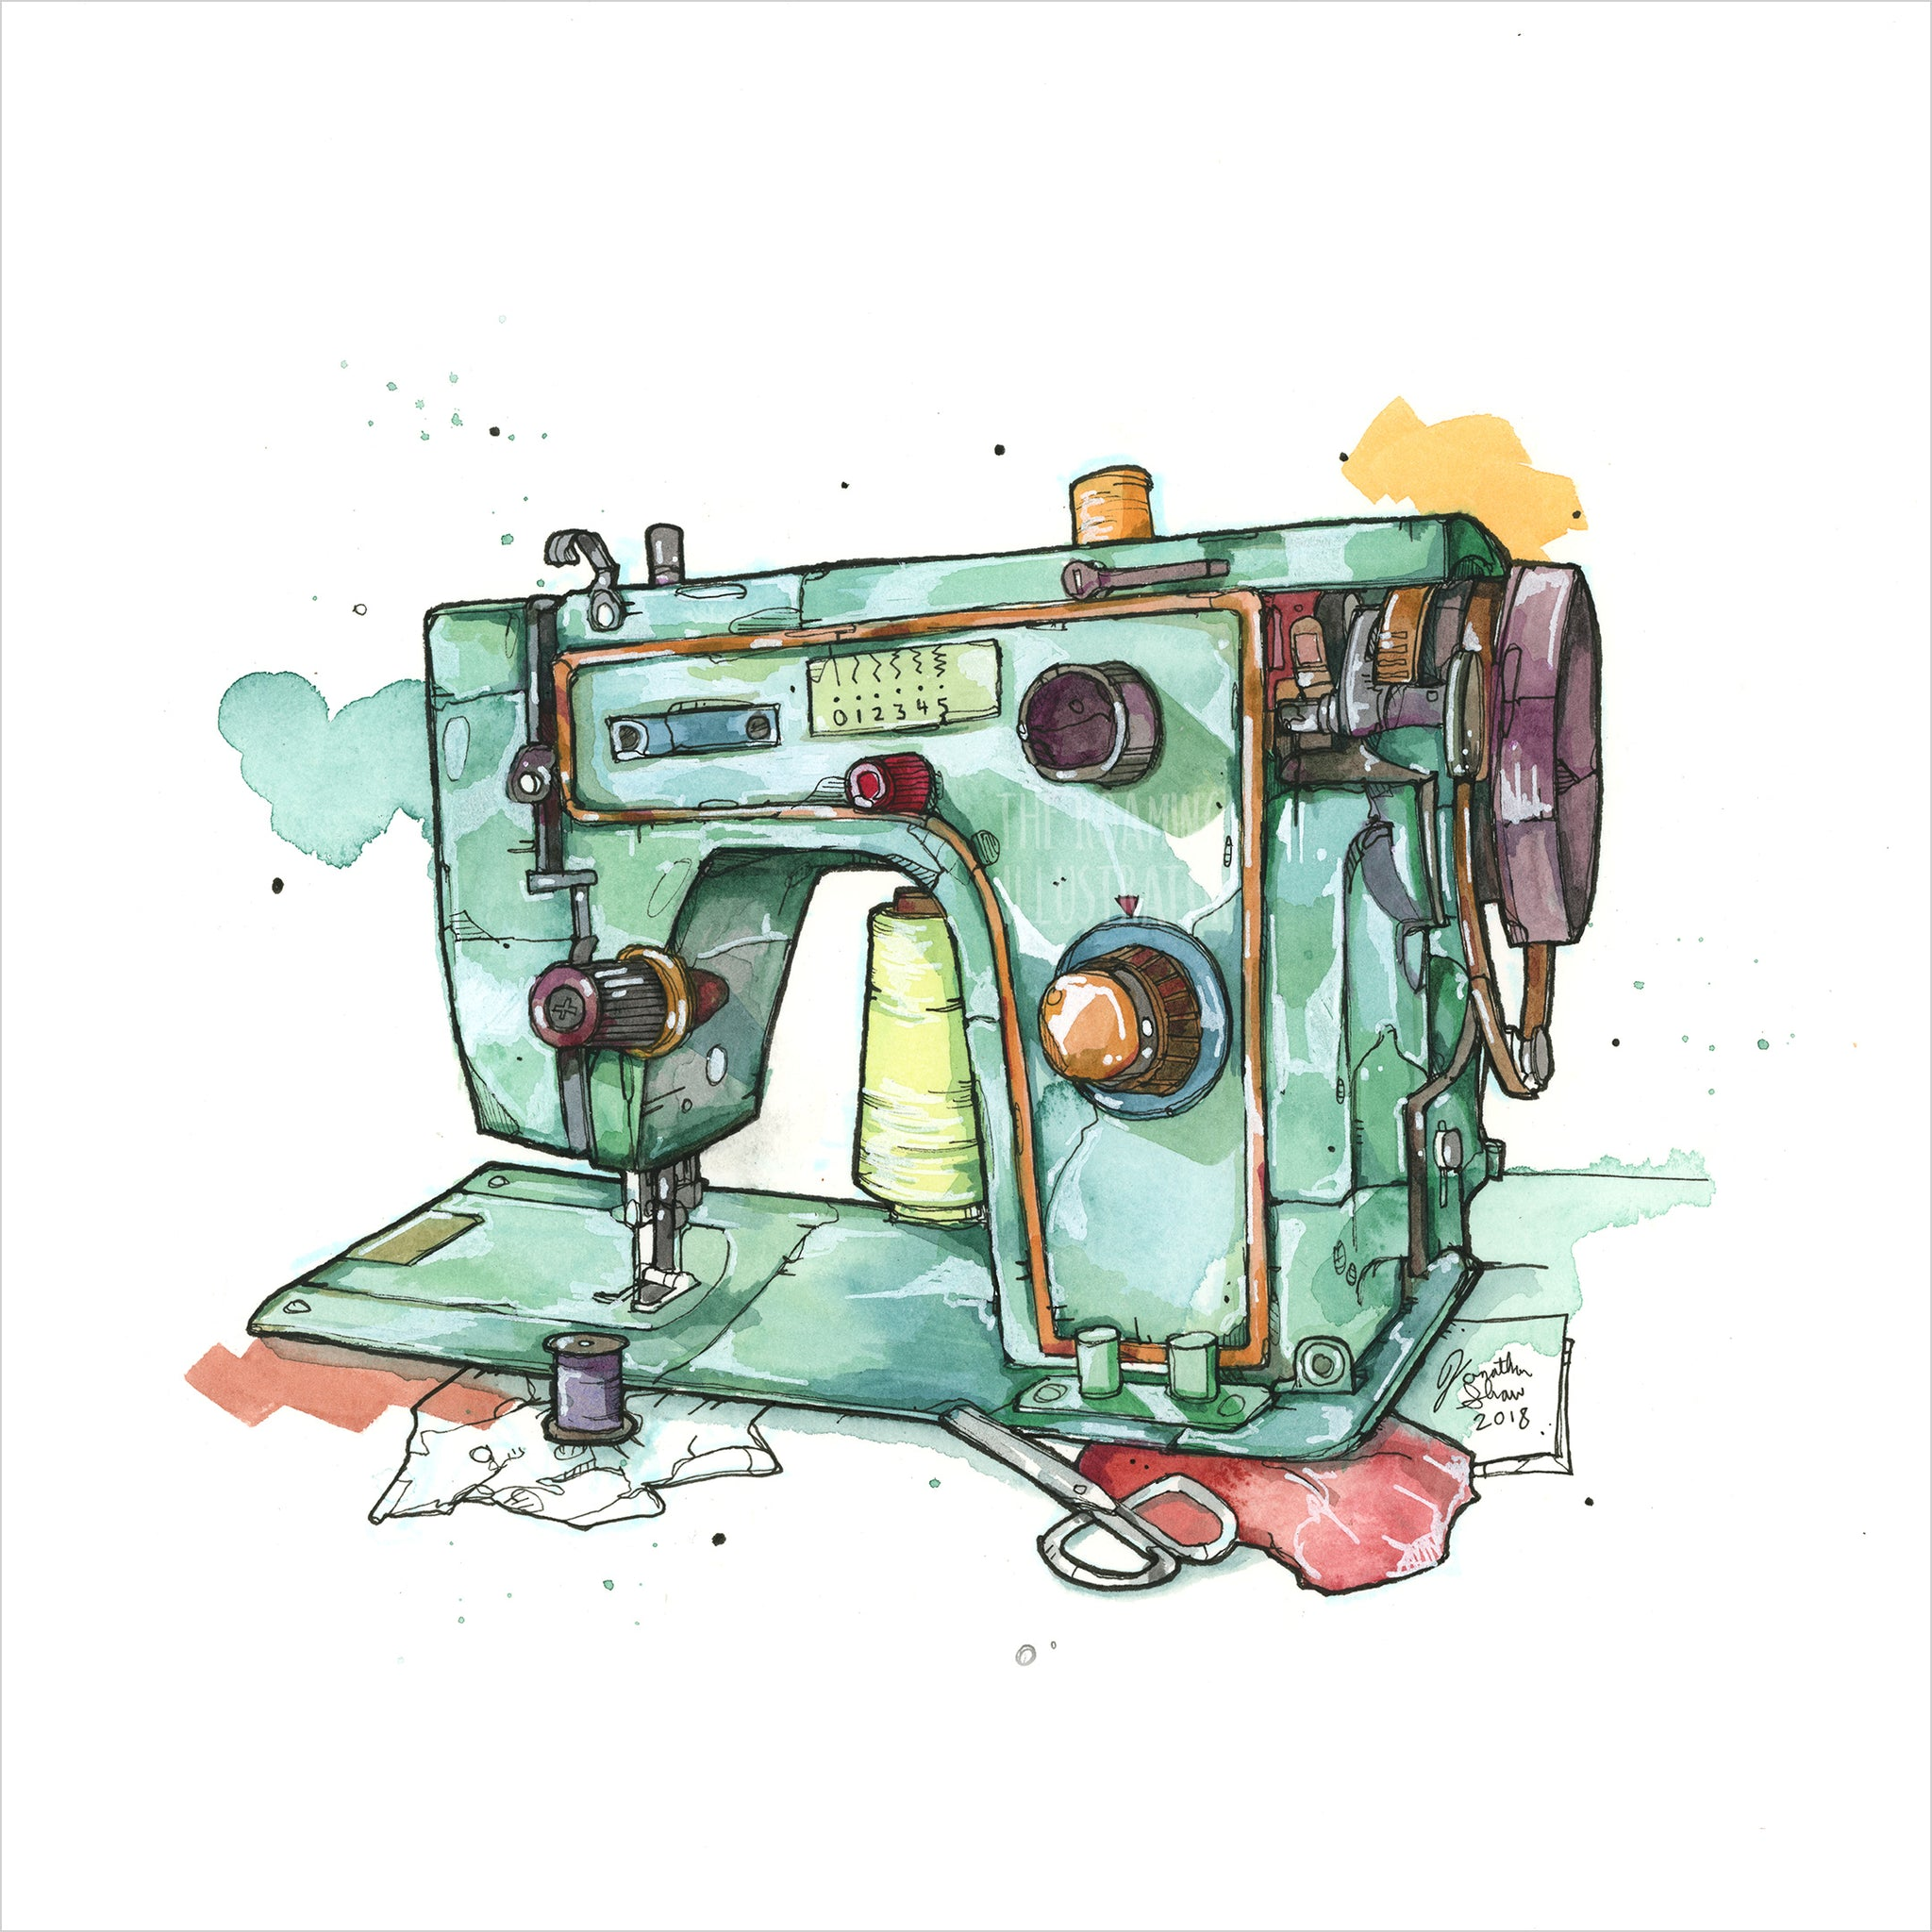 """Sewing Machine"" - 8x10 Reproduction Print"